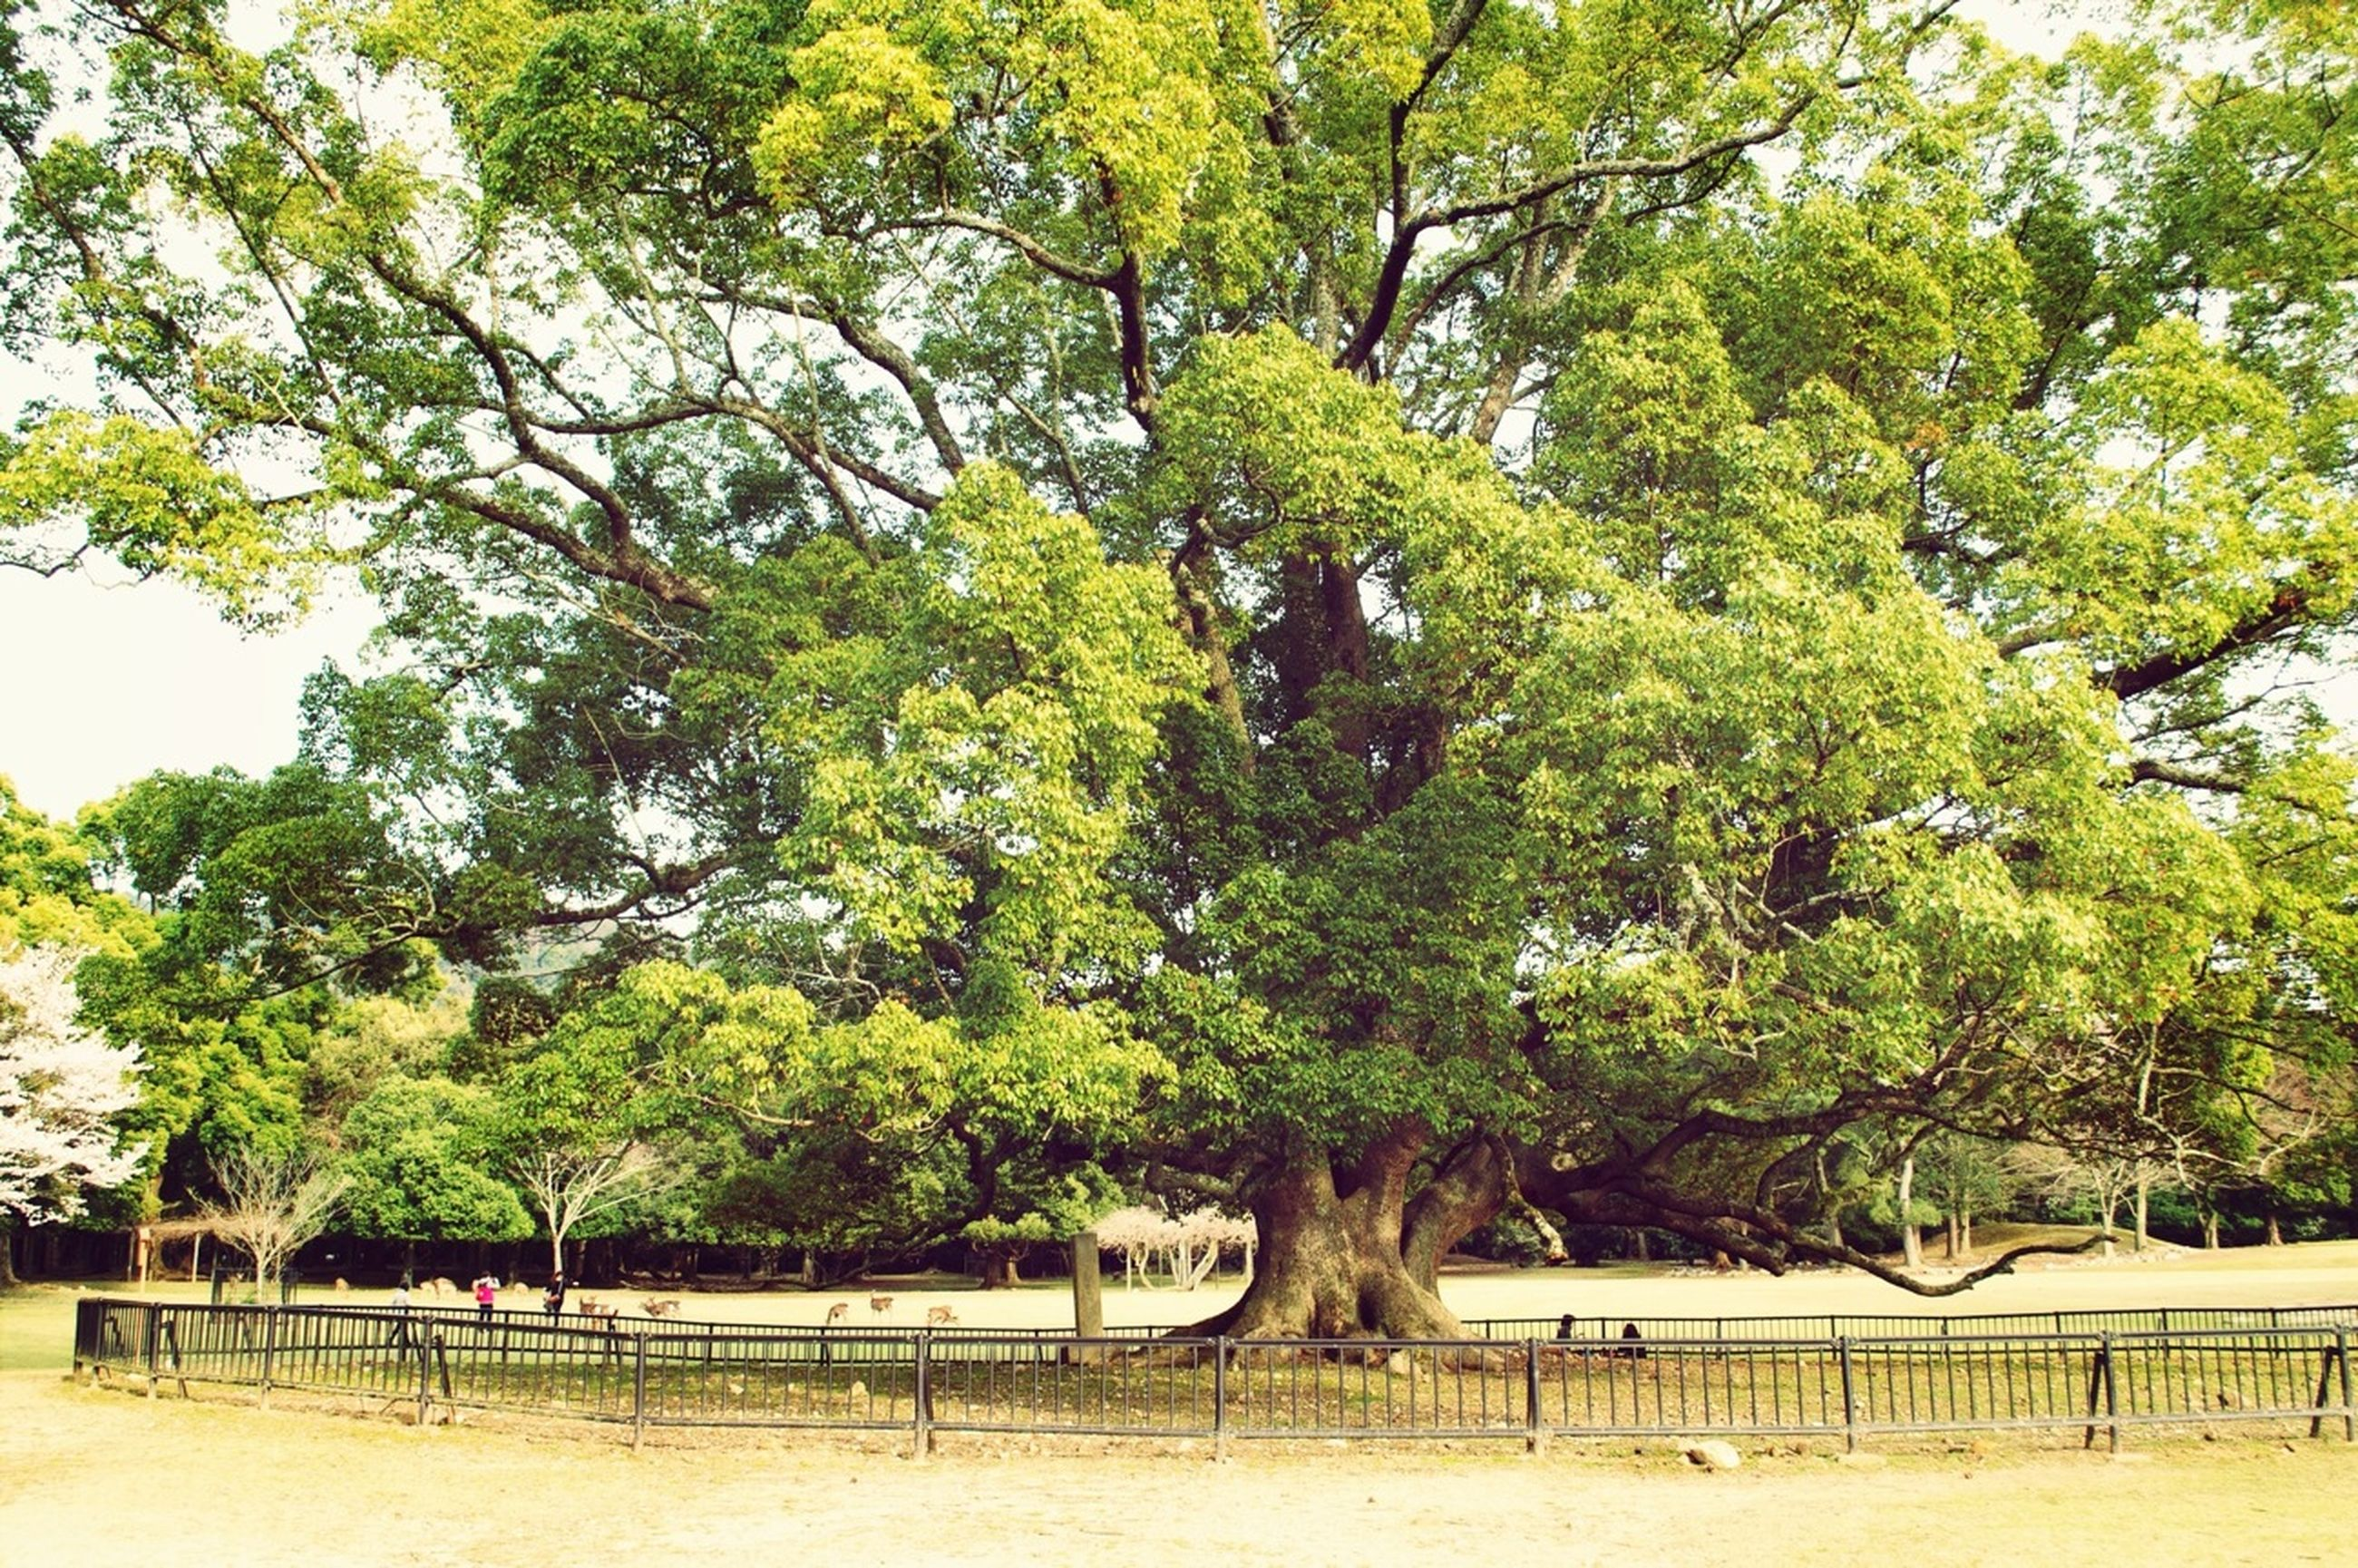 tree, growth, tranquility, green color, branch, nature, tranquil scene, beauty in nature, park - man made space, day, tree trunk, fence, scenics, bench, landscape, sunlight, outdoors, field, growing, lush foliage